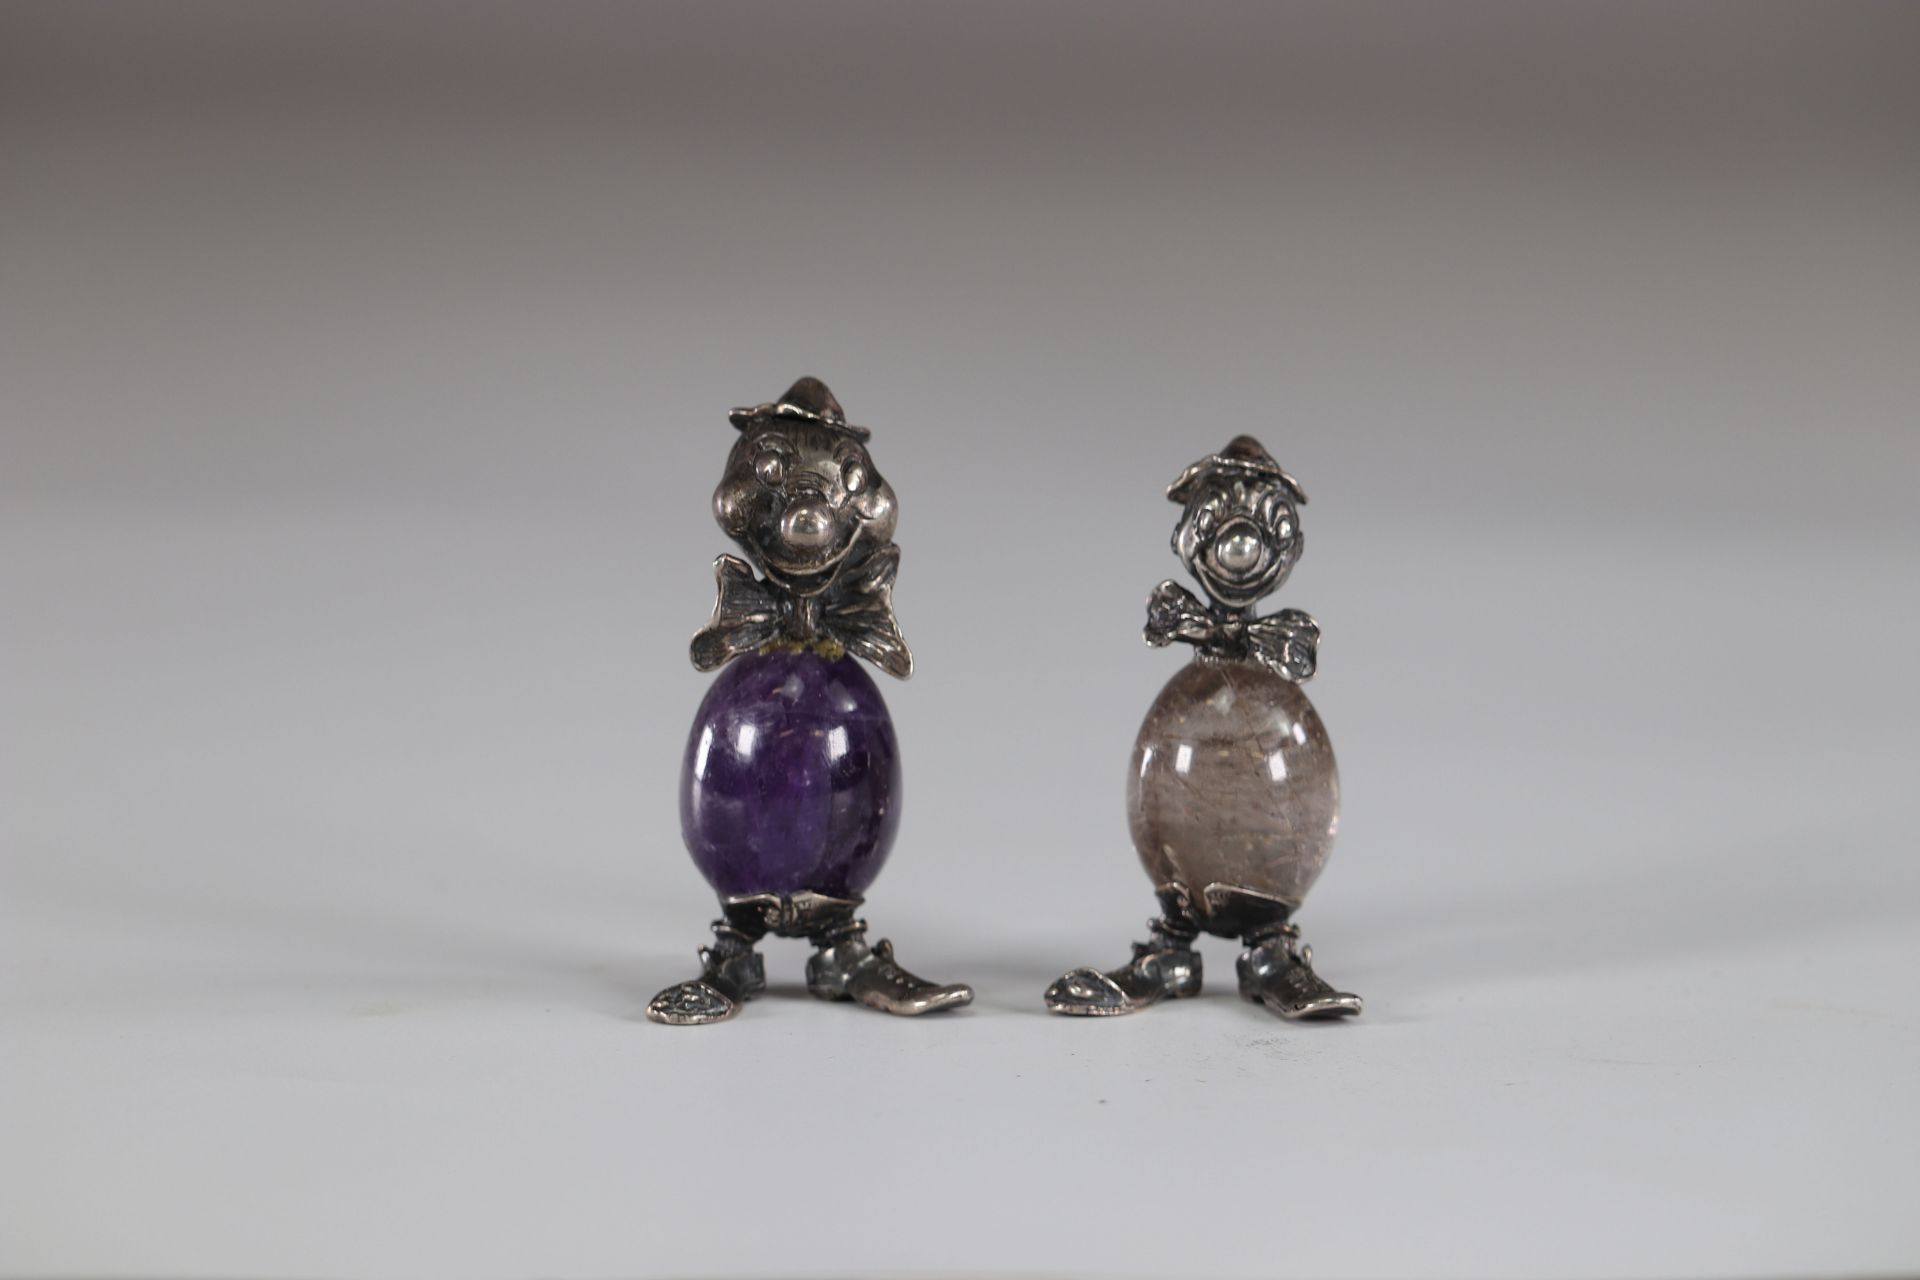 Two Clowns in silver and stone